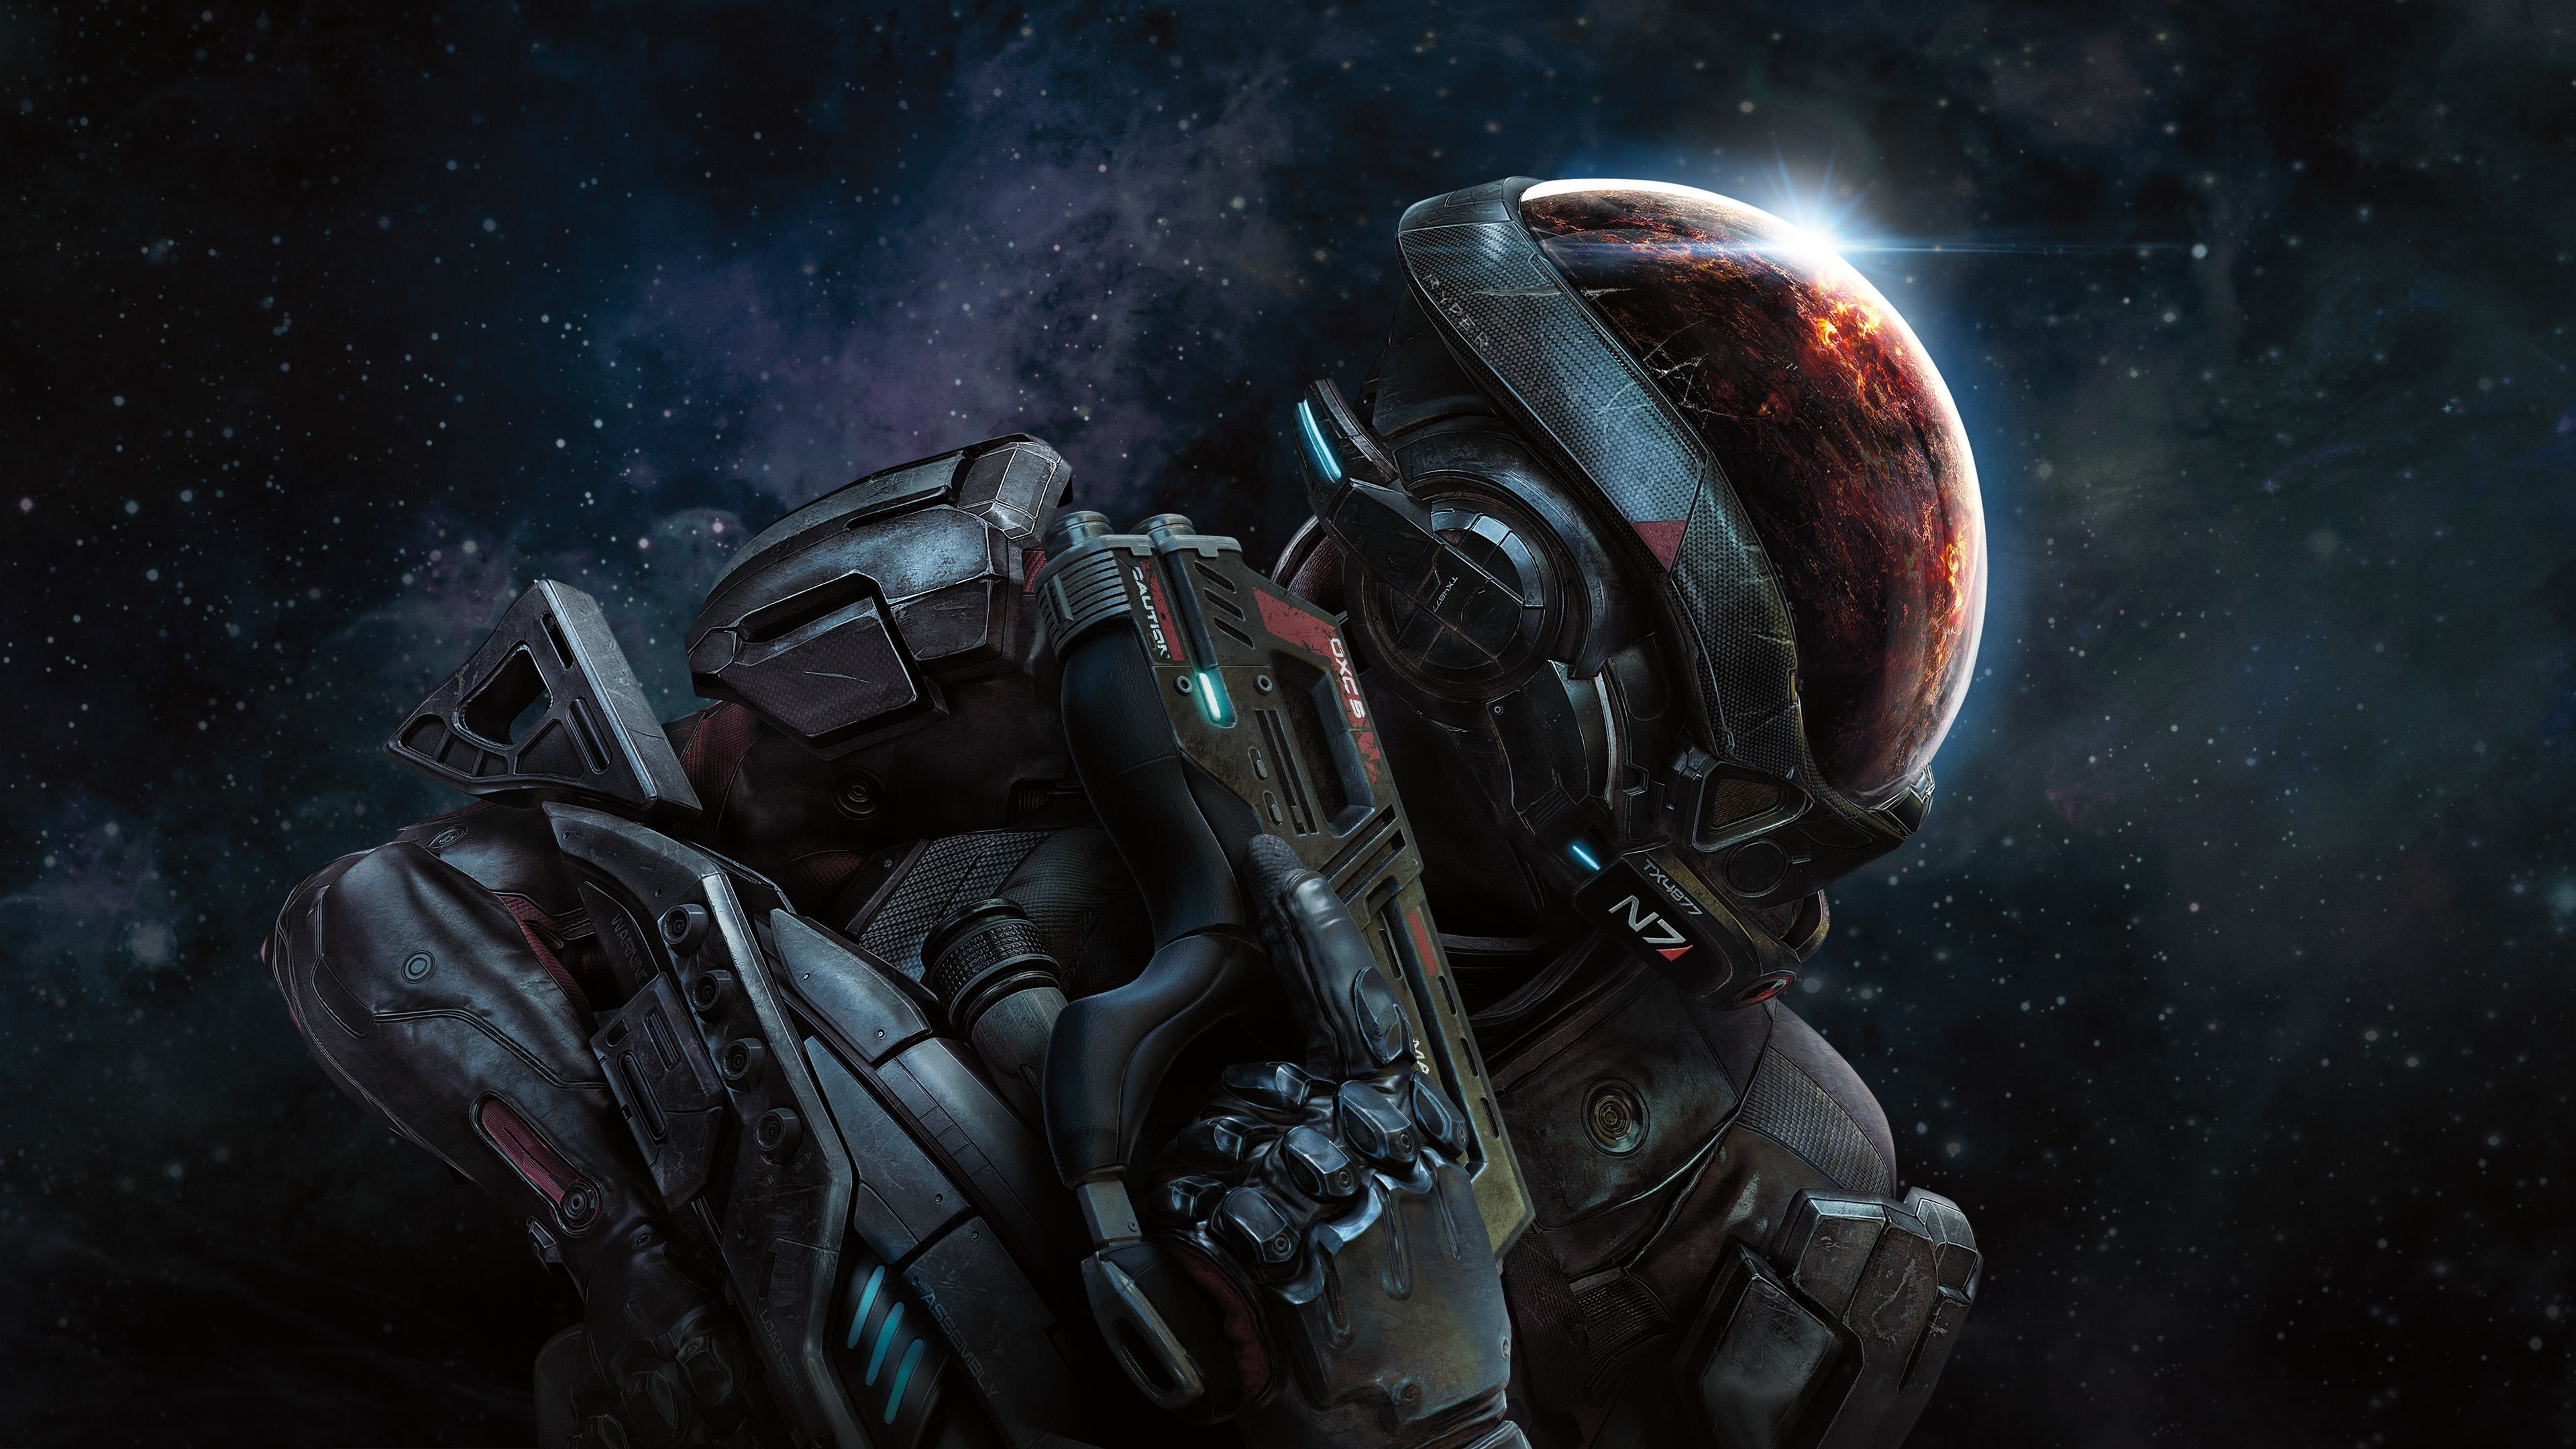 Mass Effect Andromeda Ultra 4k Xbox Games Wallpapers Ps Games Wallpapers Pc Games Wallpapers Mass Effec Mass Effect Pc Games Wallpapers 4k Wallpapers For Pc